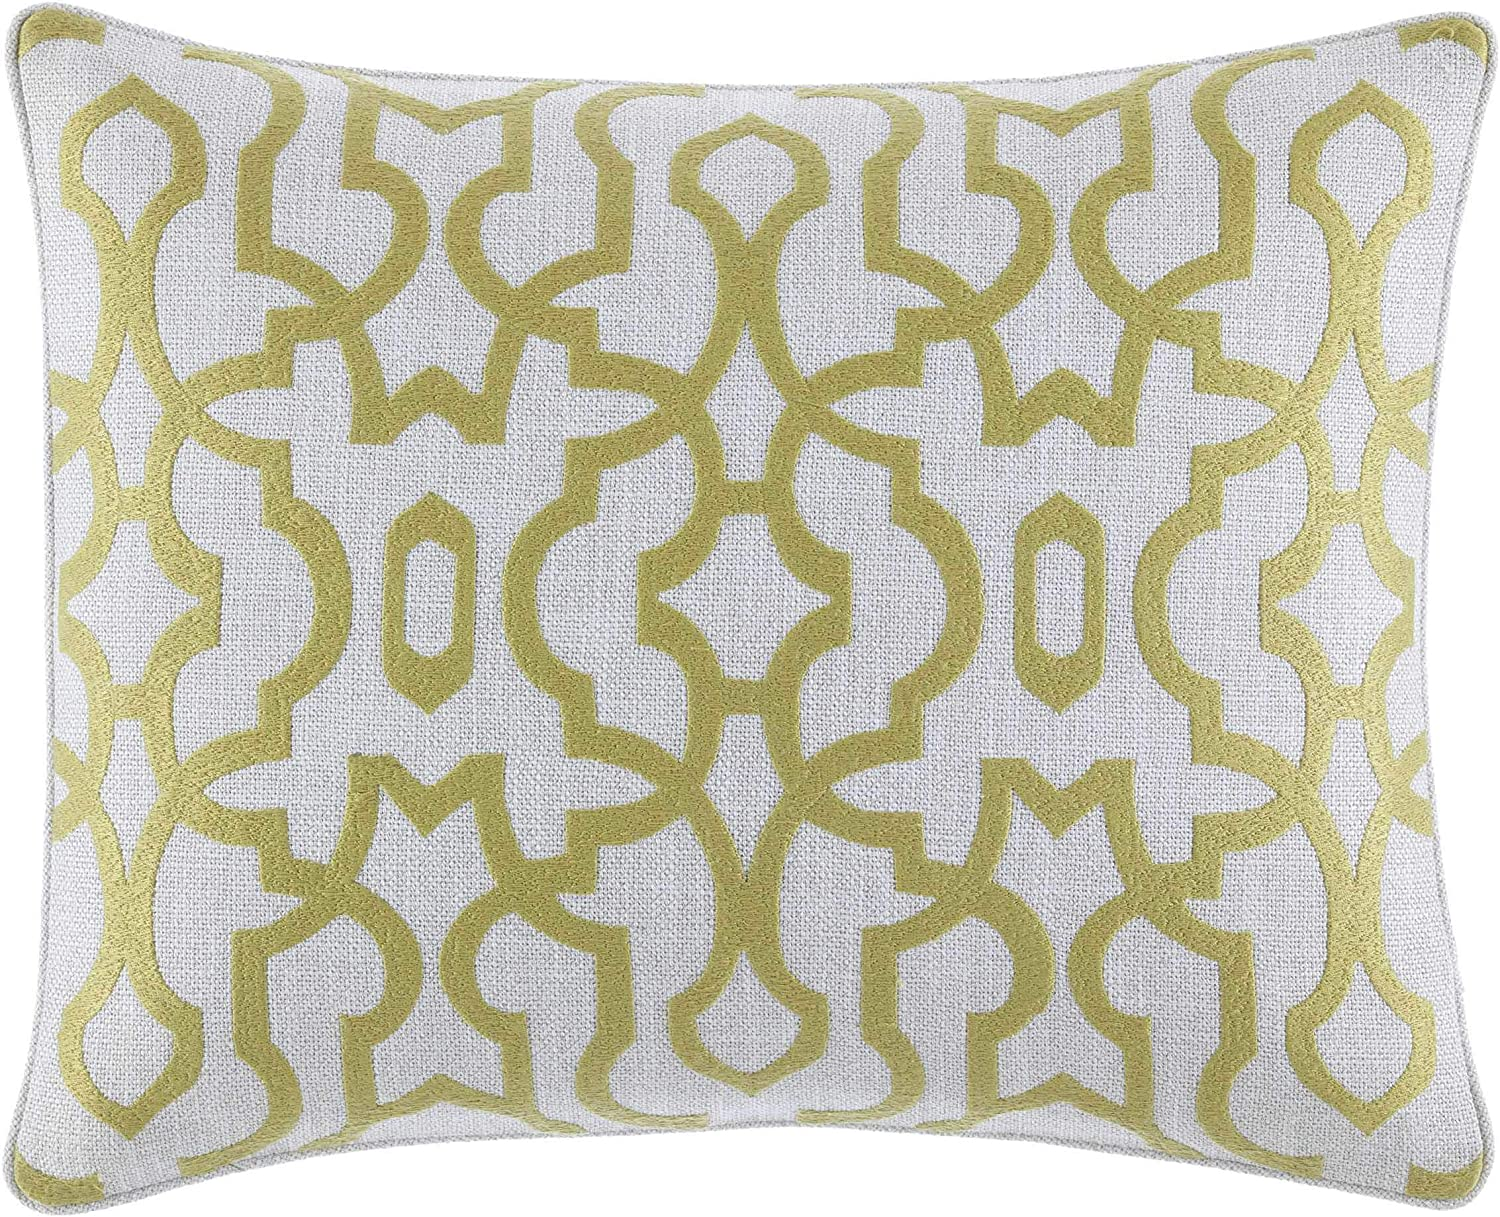 Tommy Bahama Palmiers Embroidered Trellis Throw Pillow, 16x20, Medium Green